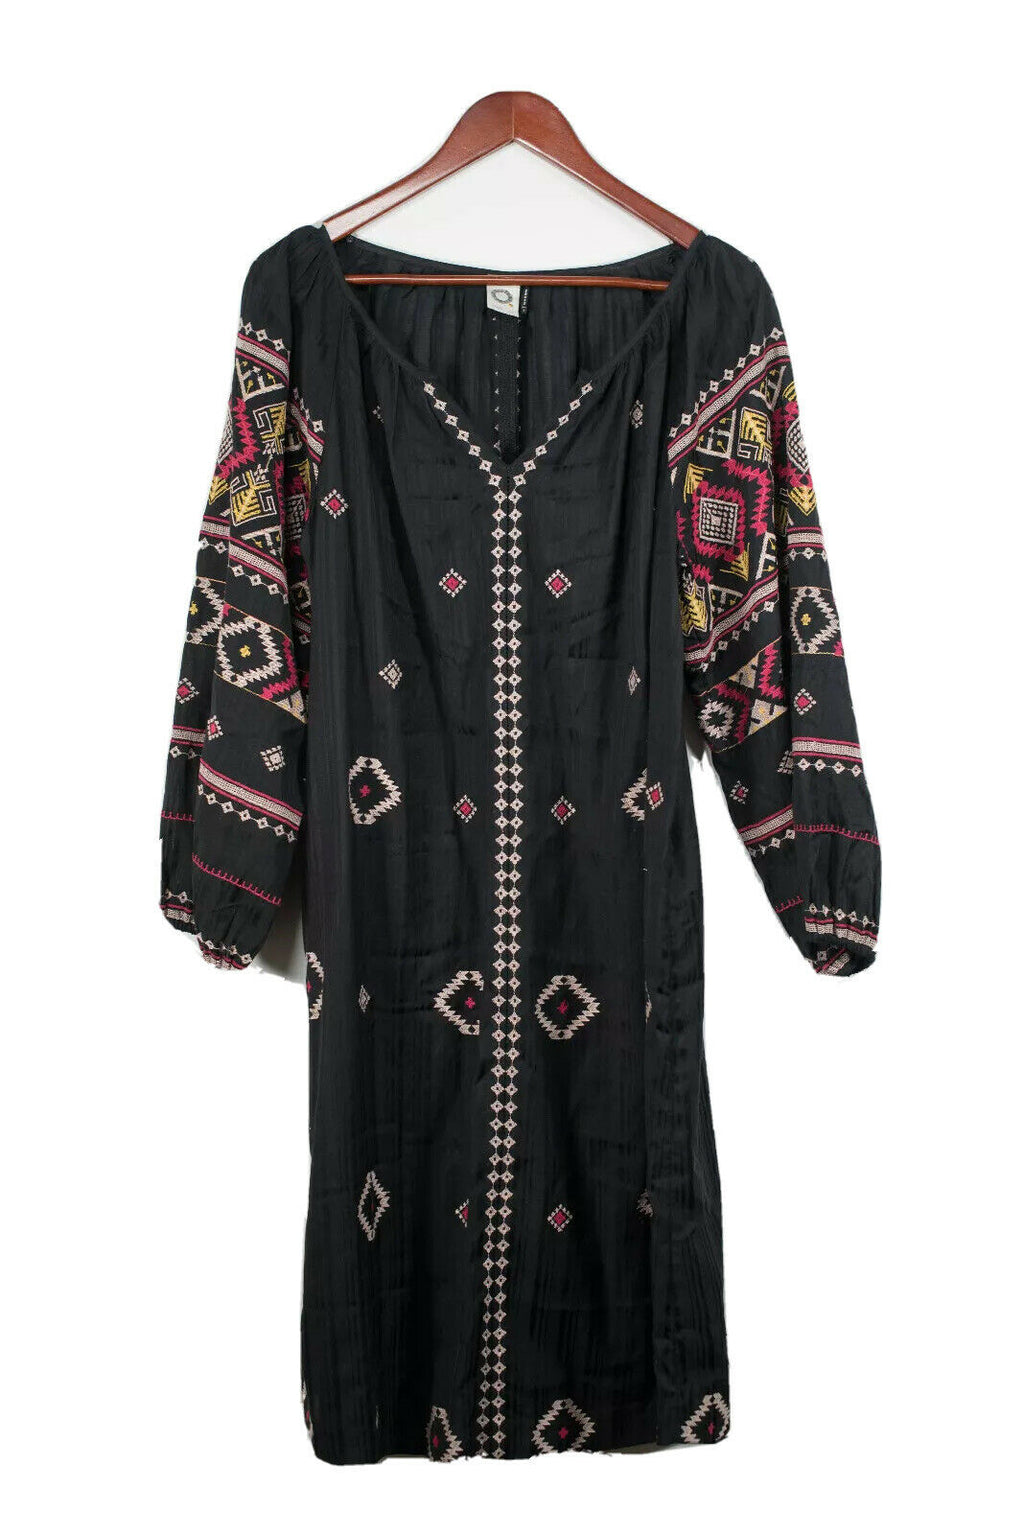 Anthropologie Akemi + Kin Large Black Embroidered Dress